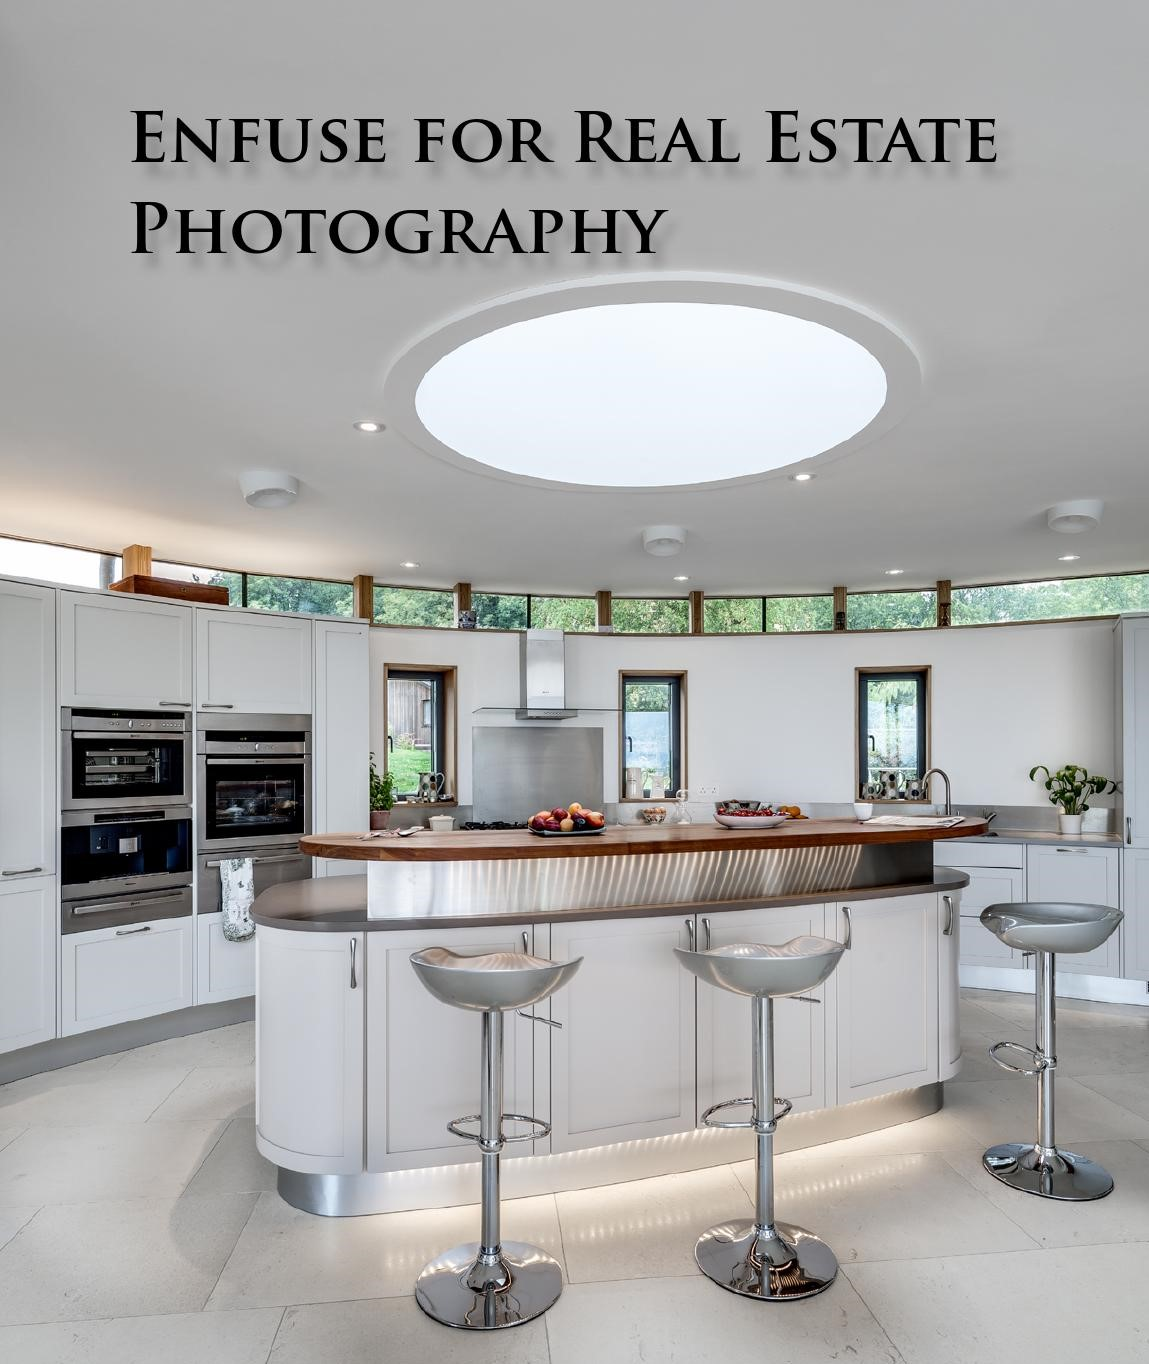 Enfuse for Real-estate photography